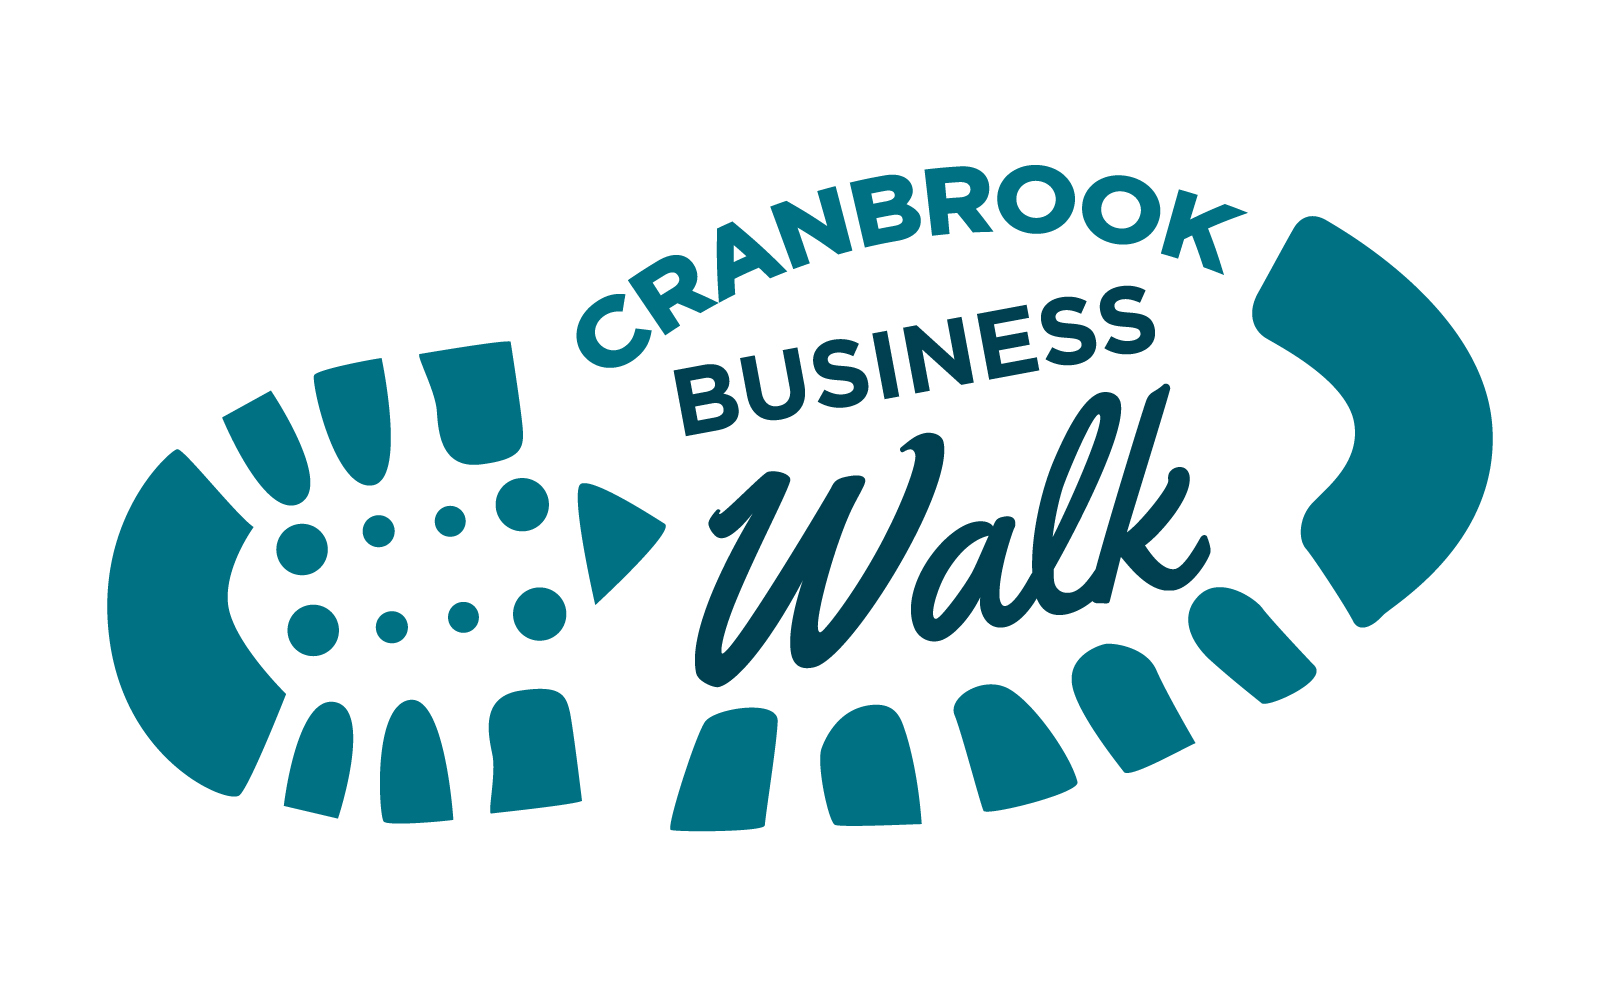 2nd Cranbrook Business Walk hits the streets Tuesday